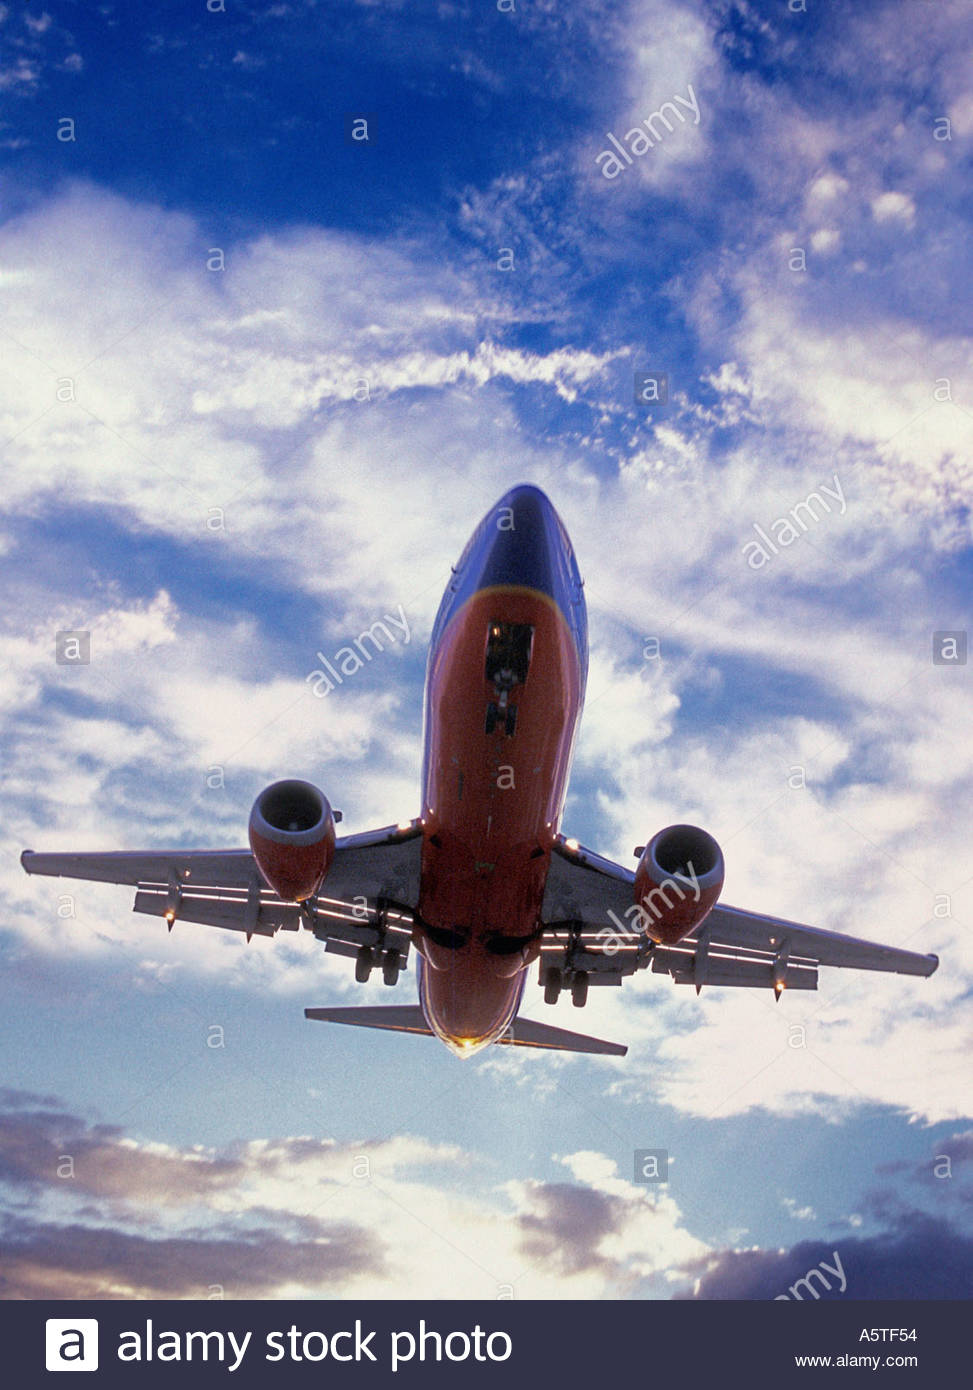 Commercial airliner in flight. - Stock Image